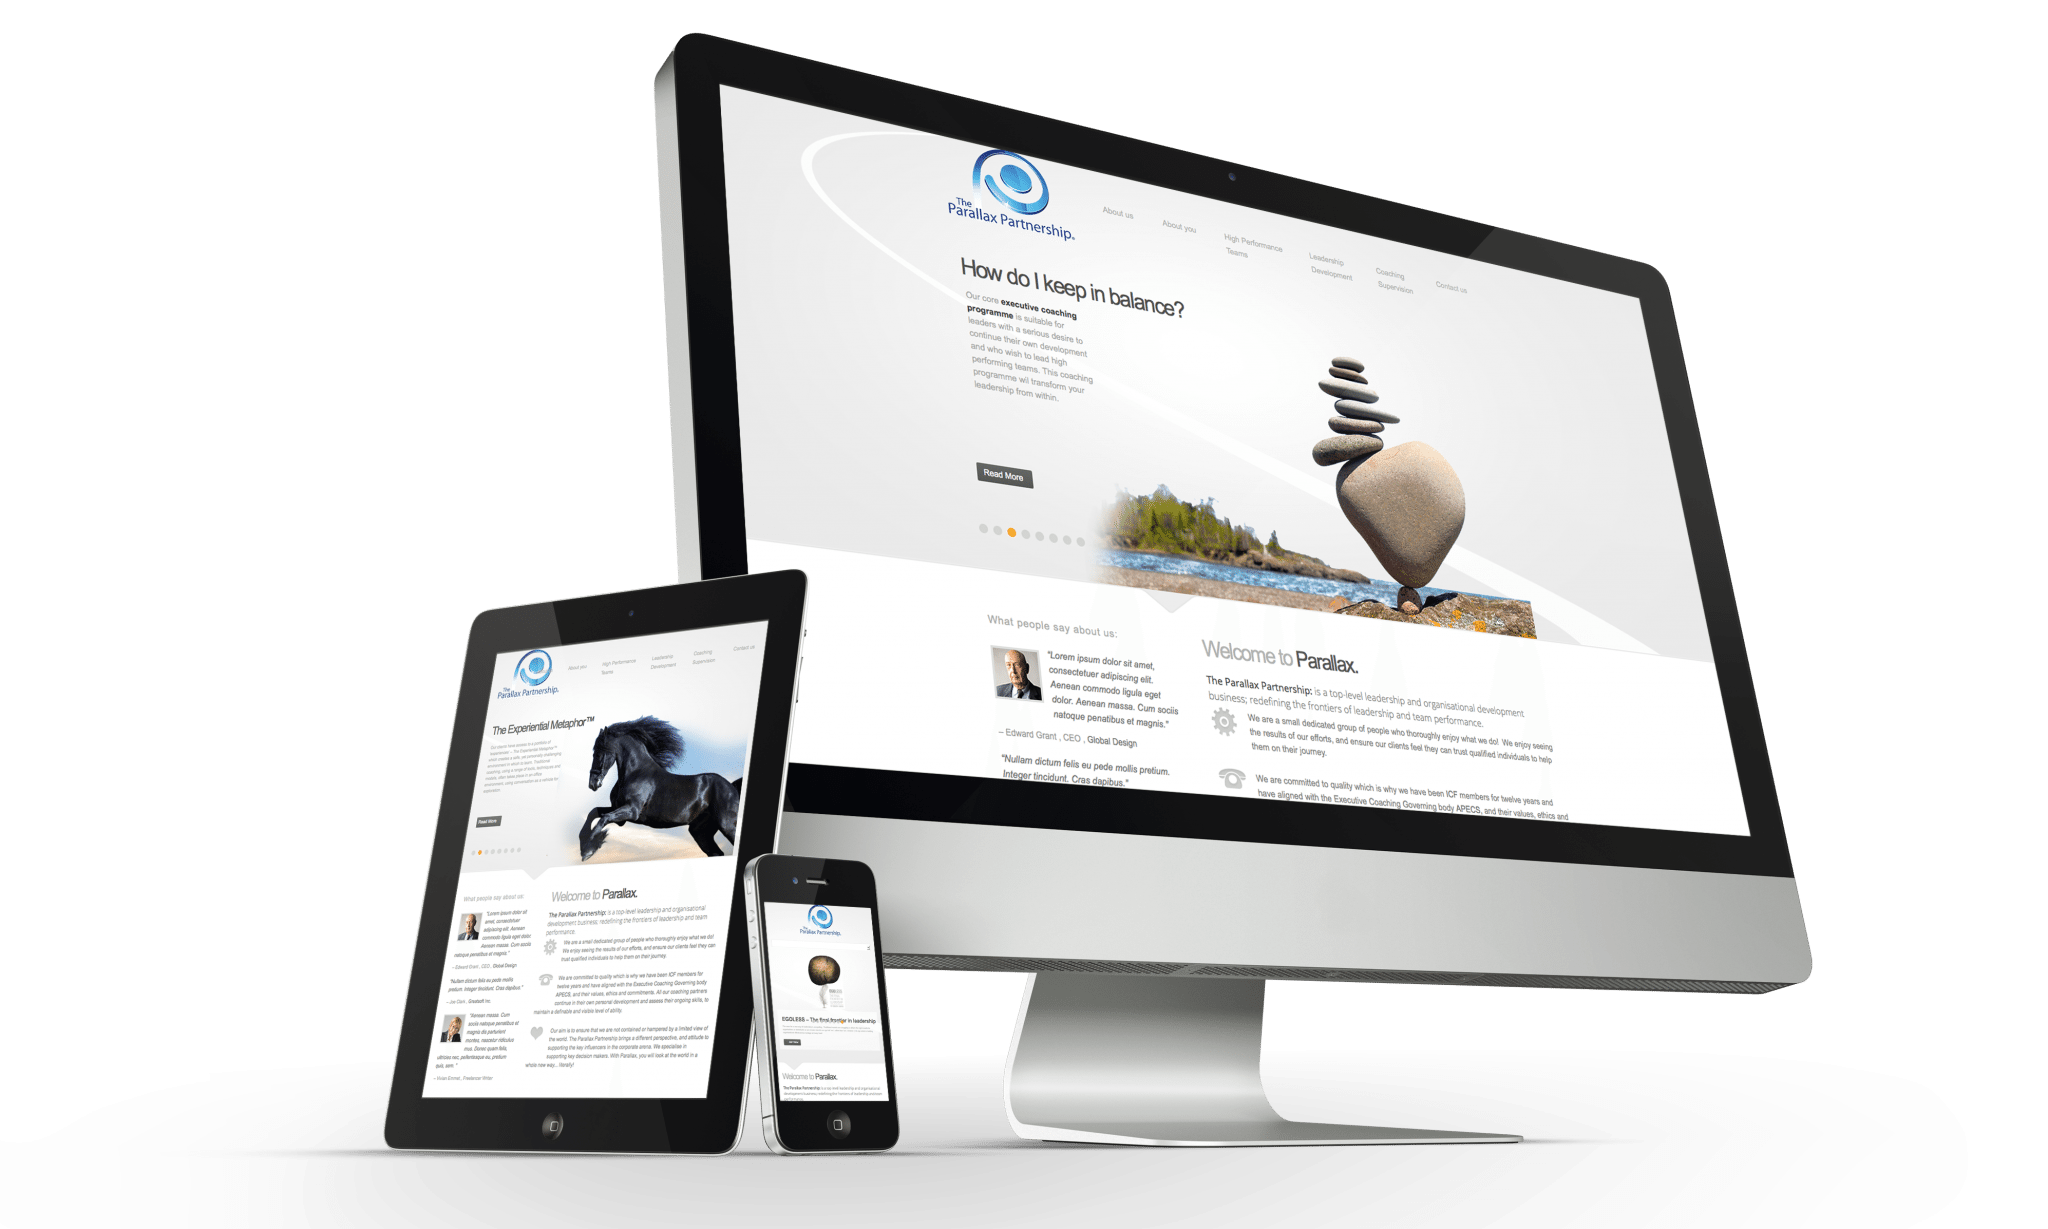 imgbin_responsive-web-design-web-development-digital-marketing-professional-web-design-png